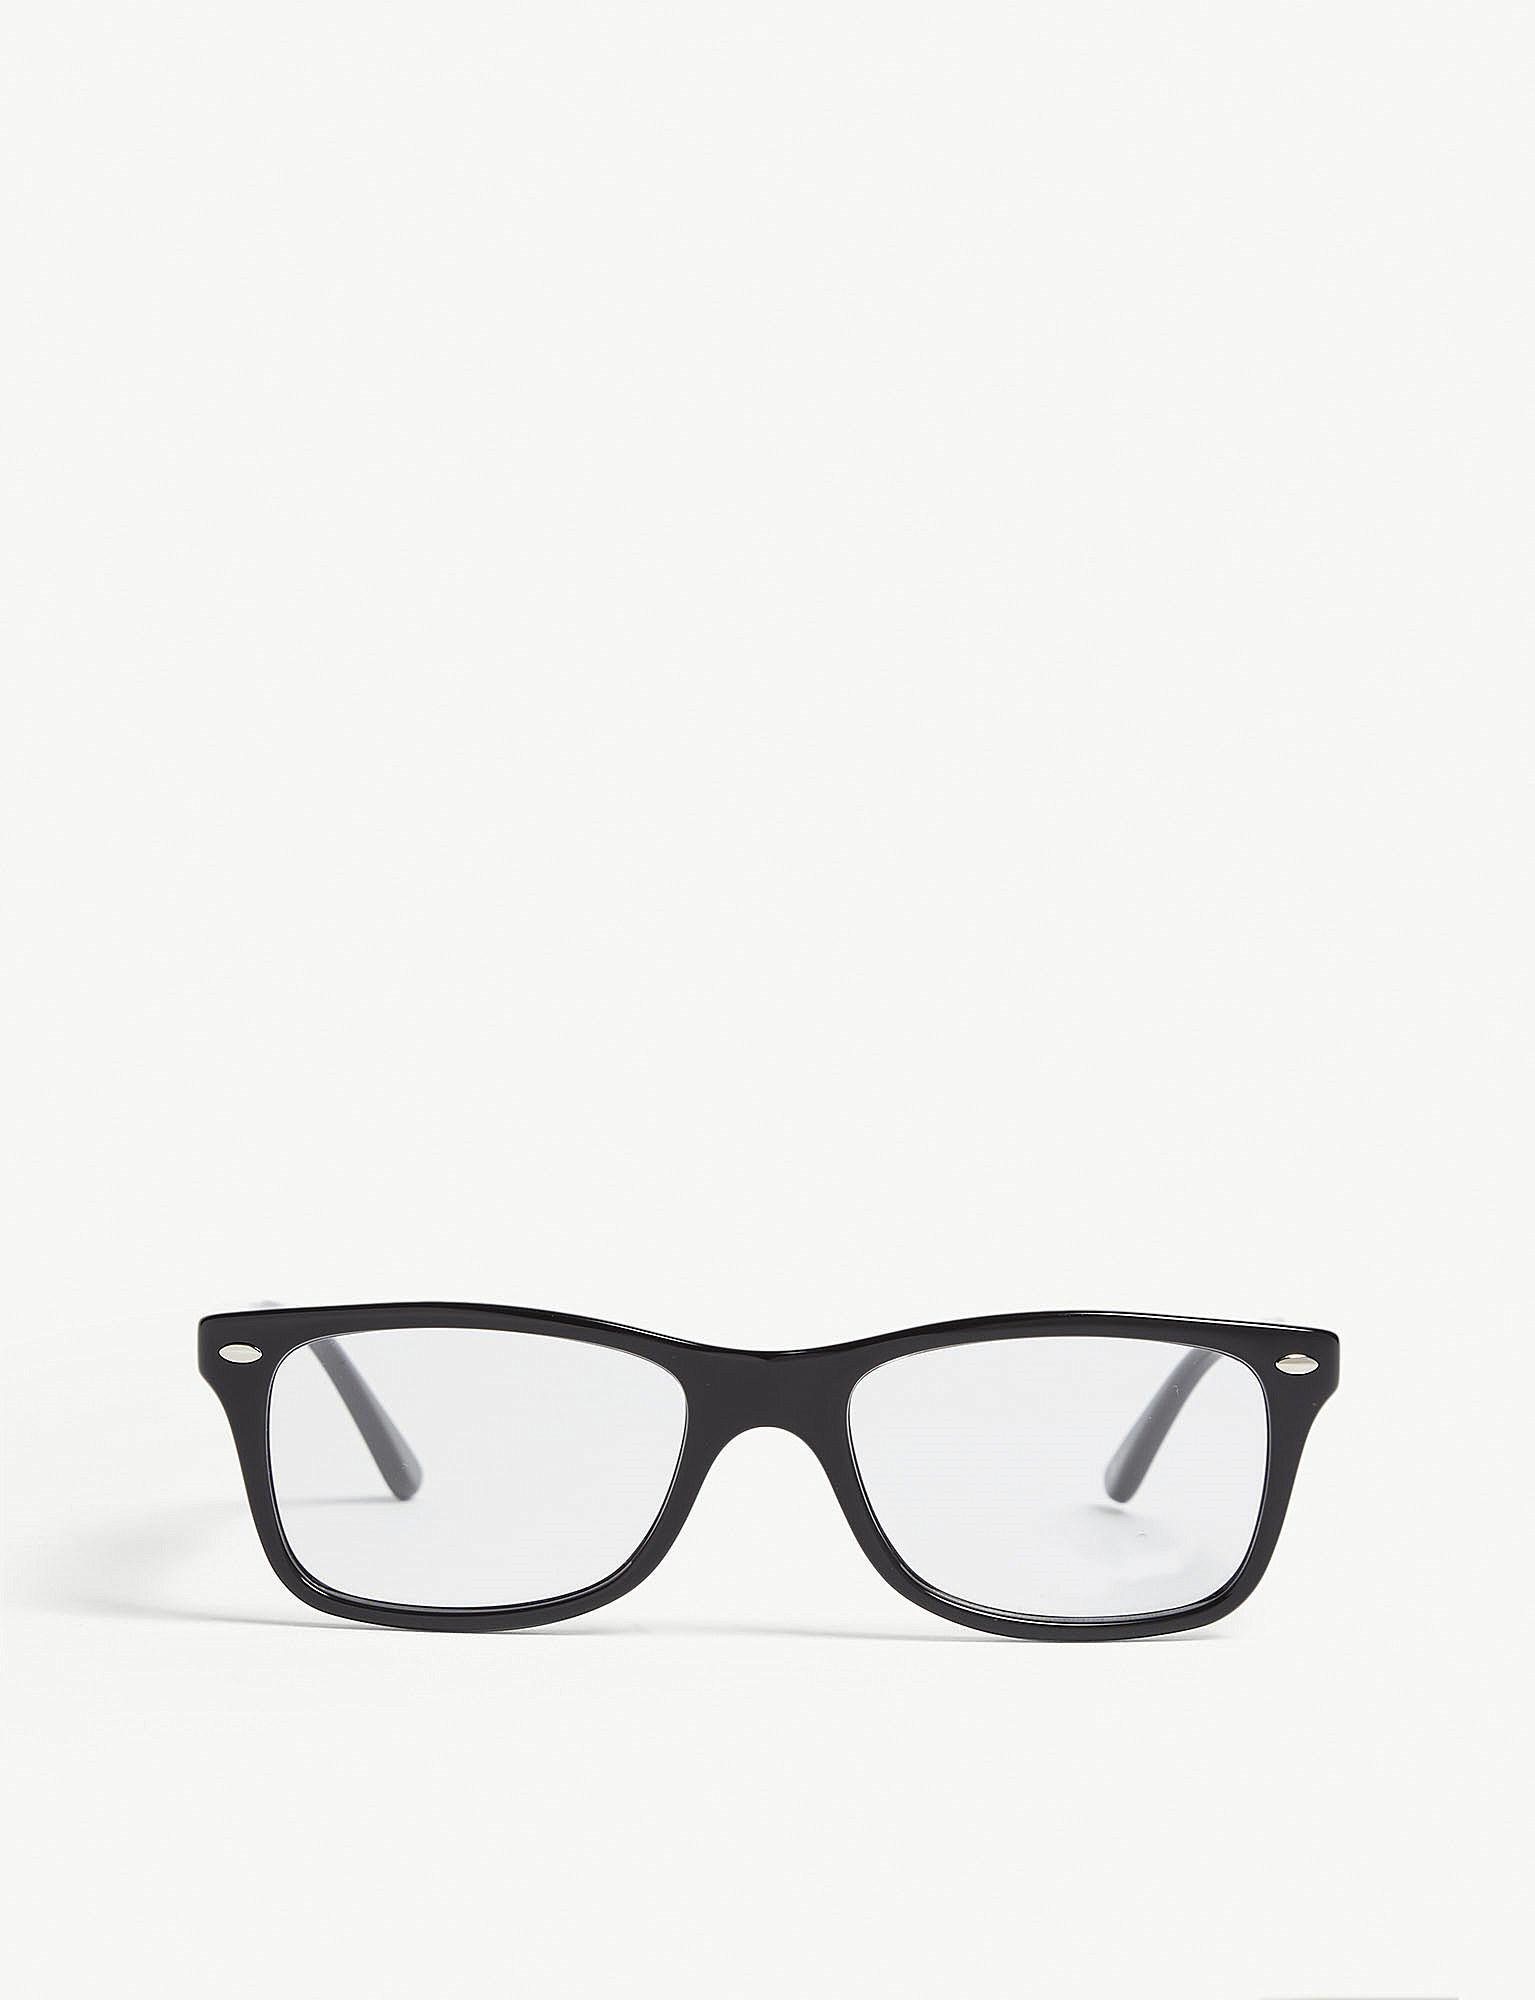 lyst ray ban rb5228 square frame glasses in black Ray-Ban Aviators Style ray ban